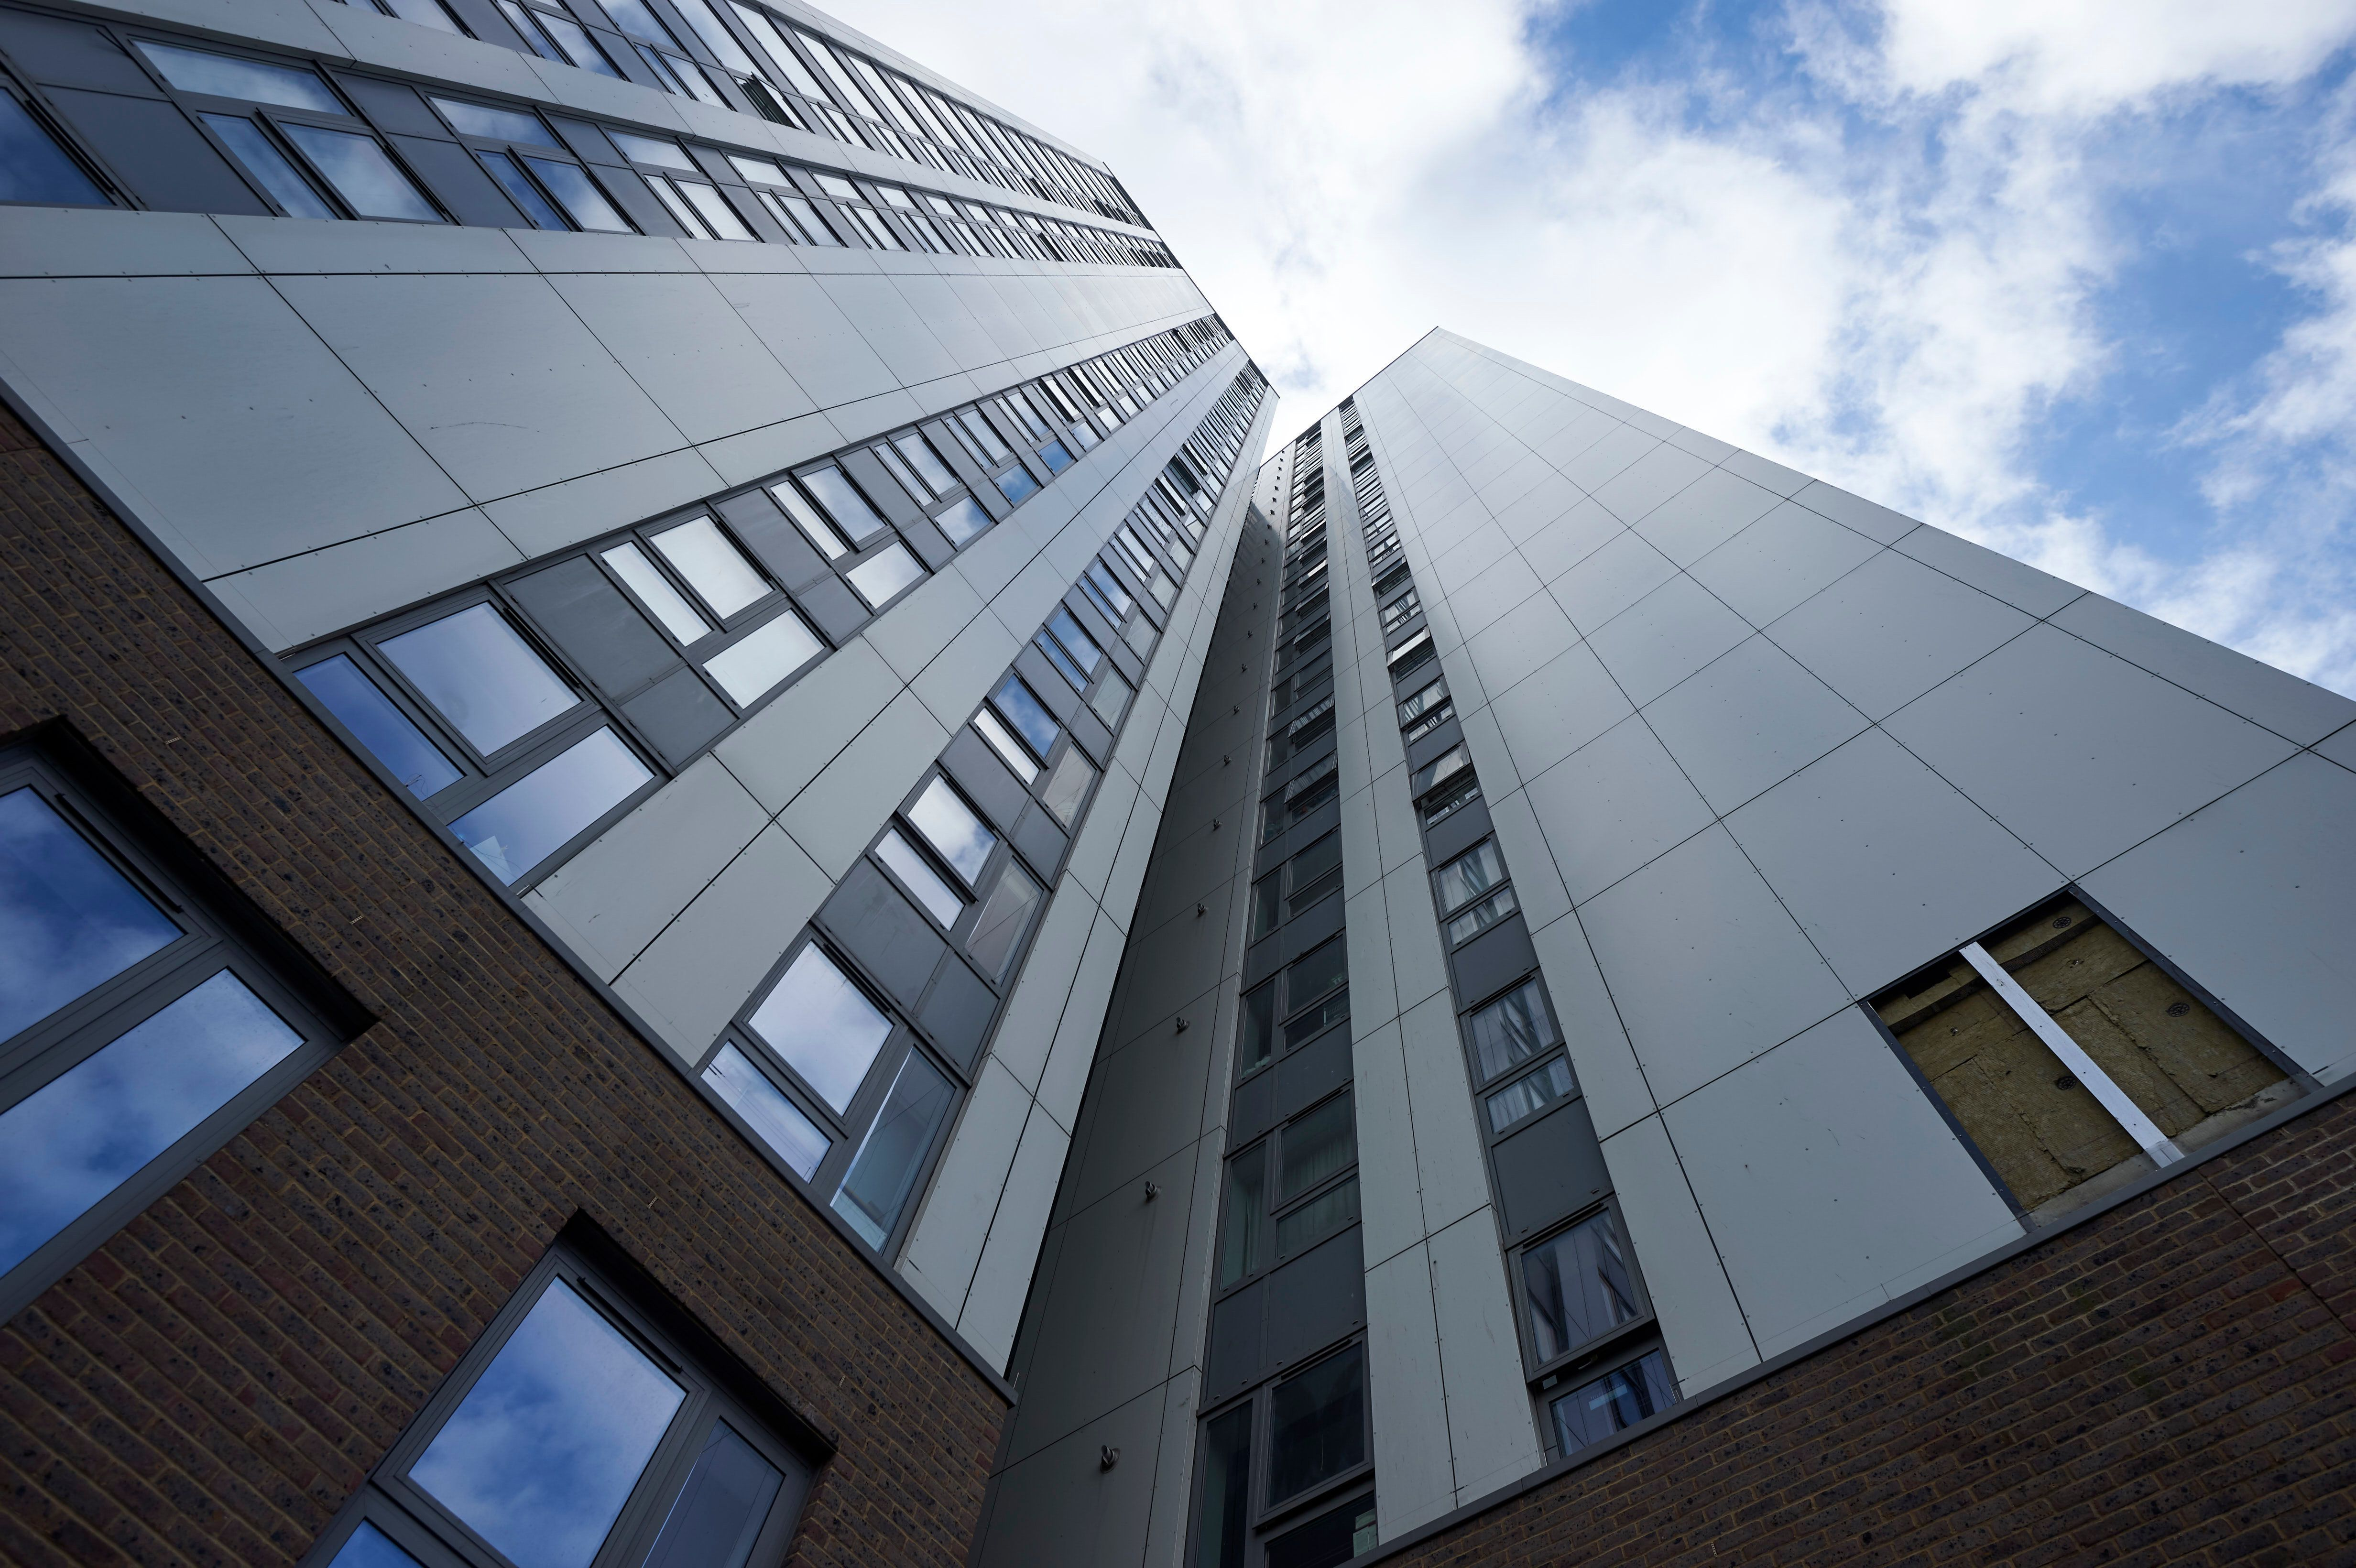 External cladding was removed from Bray residential tower block on the Chalcots Estate in north